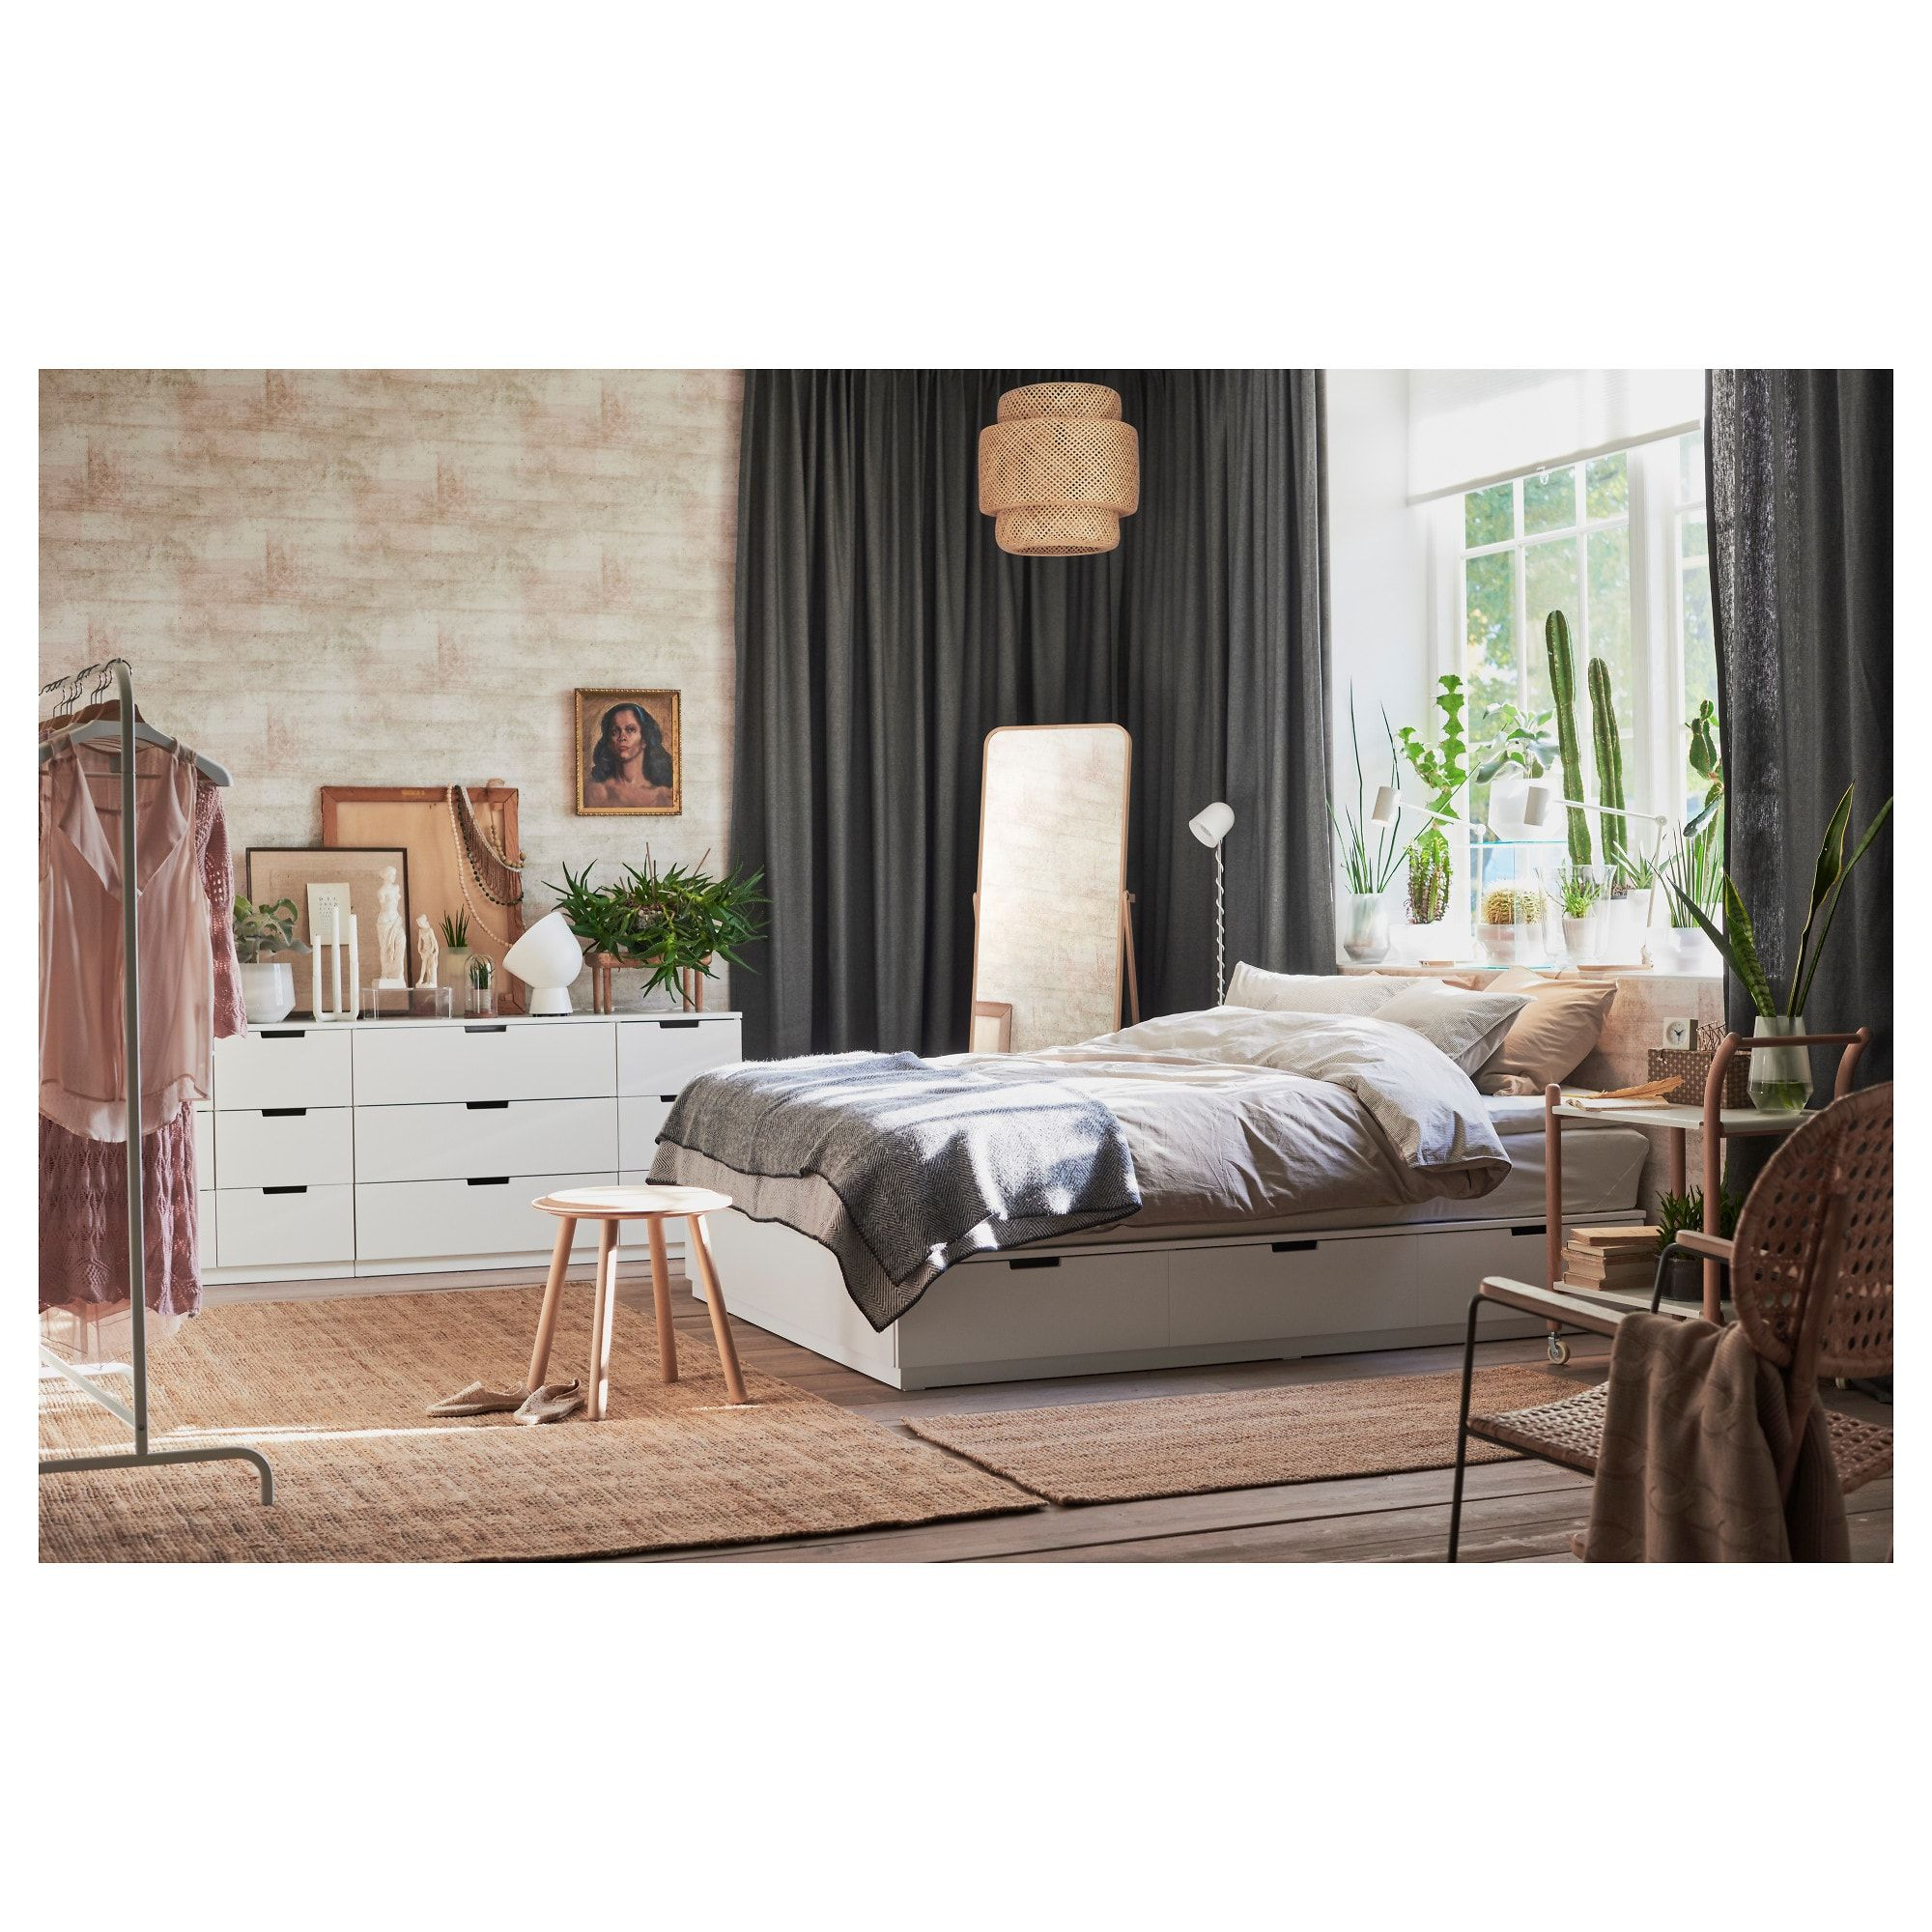 Nordli Bed Frame With Storage White Queen Ikea Bed Frame With Storage Bedroom Furniture Sets Murphy Bed Plans